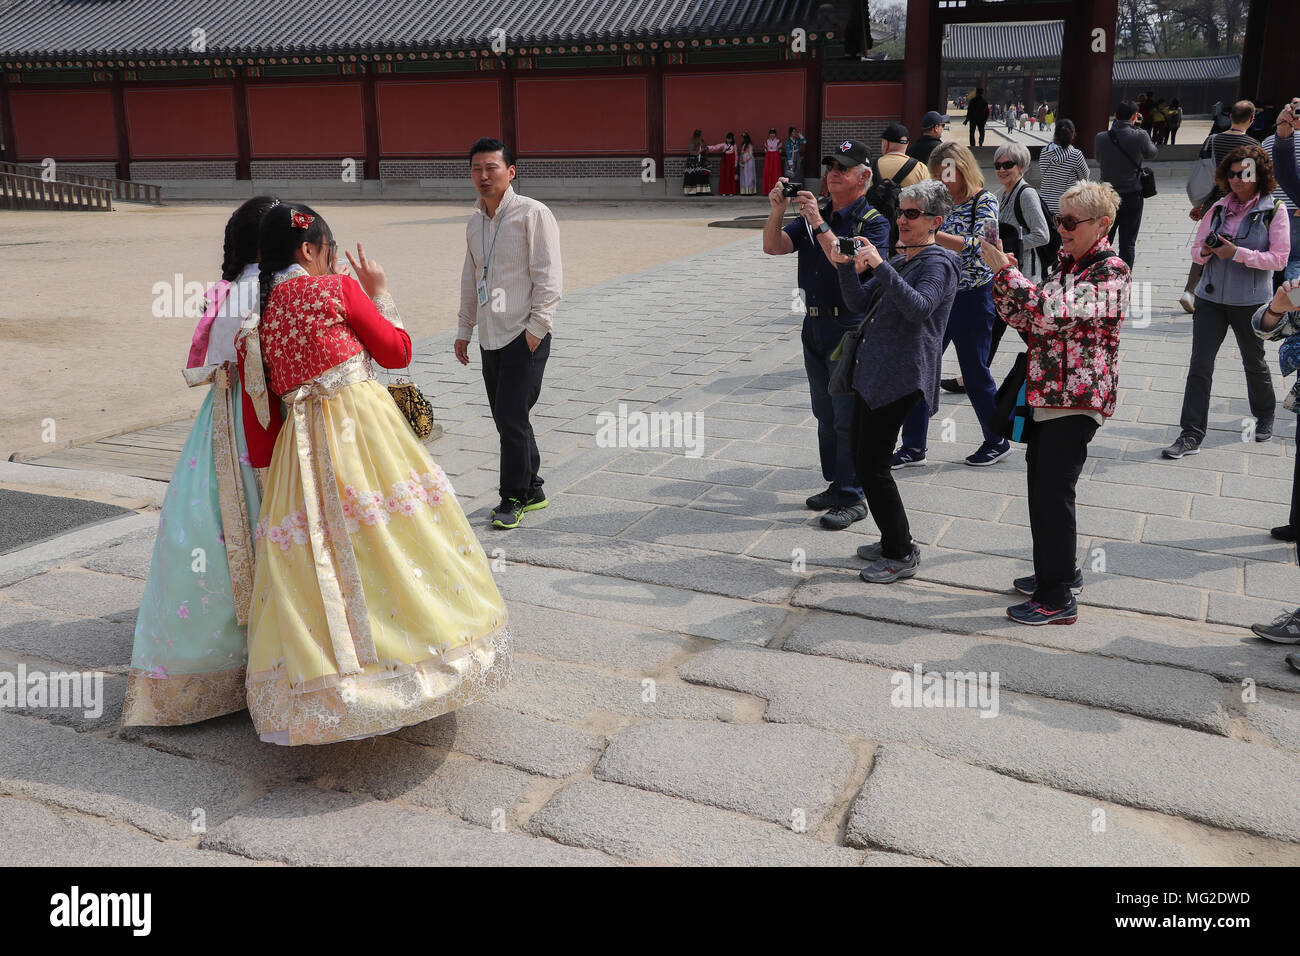 A group of tourists rush over to photograph two young women dressed in traditional brightly colored Korean hanboks who pose in Seoul, Korea. - Stock Image